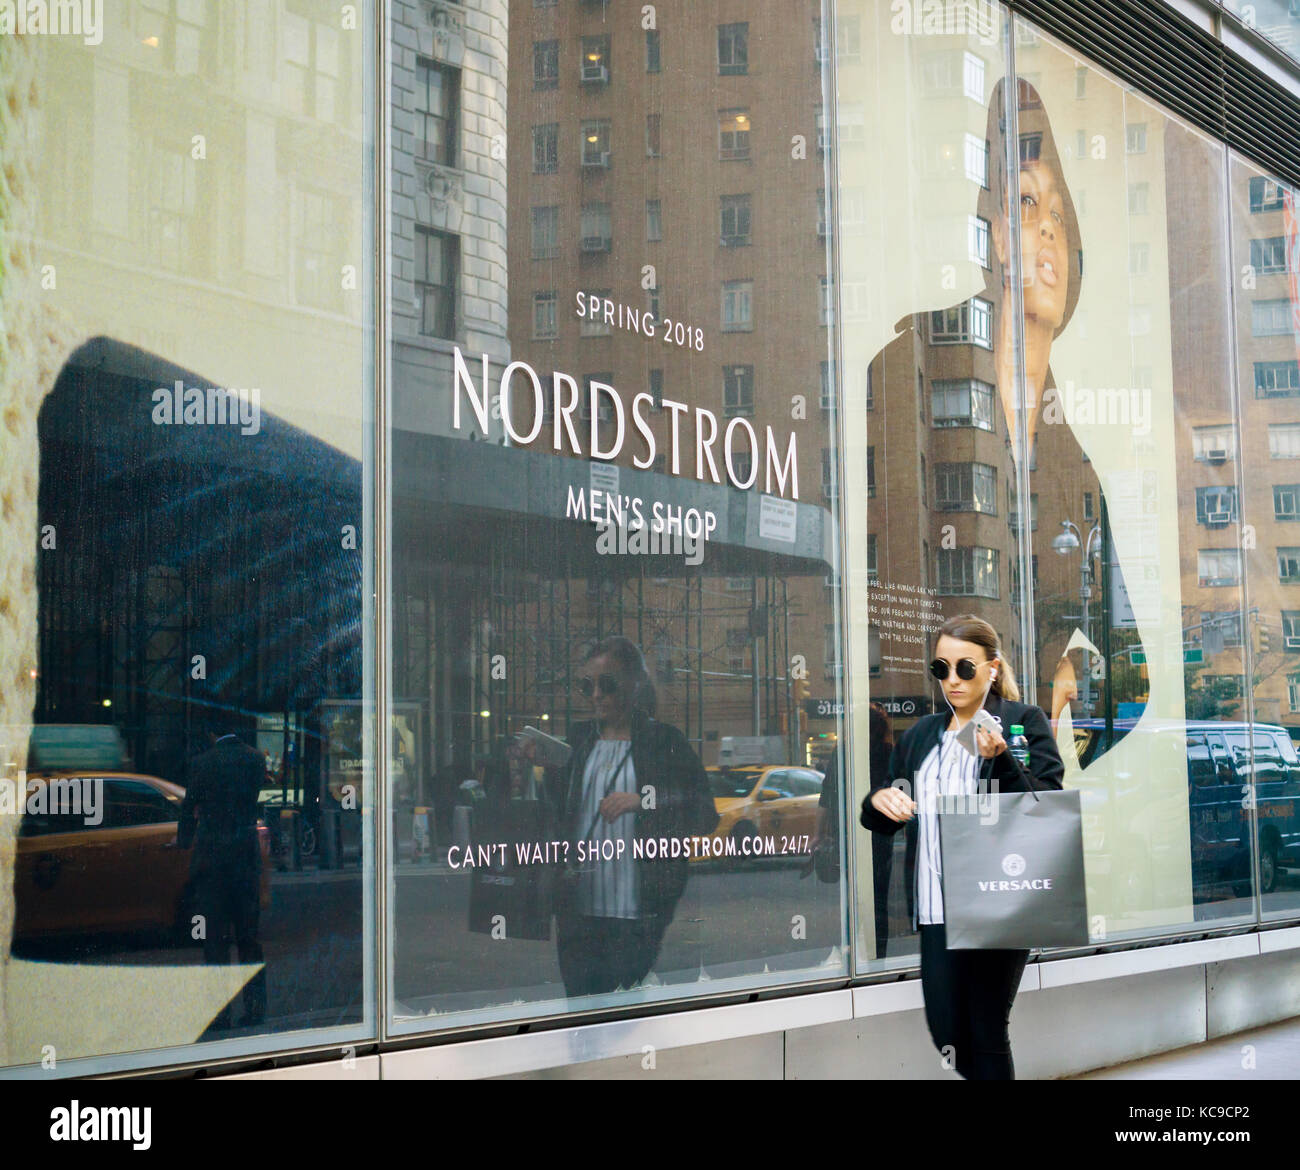 The future home of a Nordstrom Men's shop in Midtown Manhattan in New York on Monday, October 2, 2017.  Shares - Stock Image